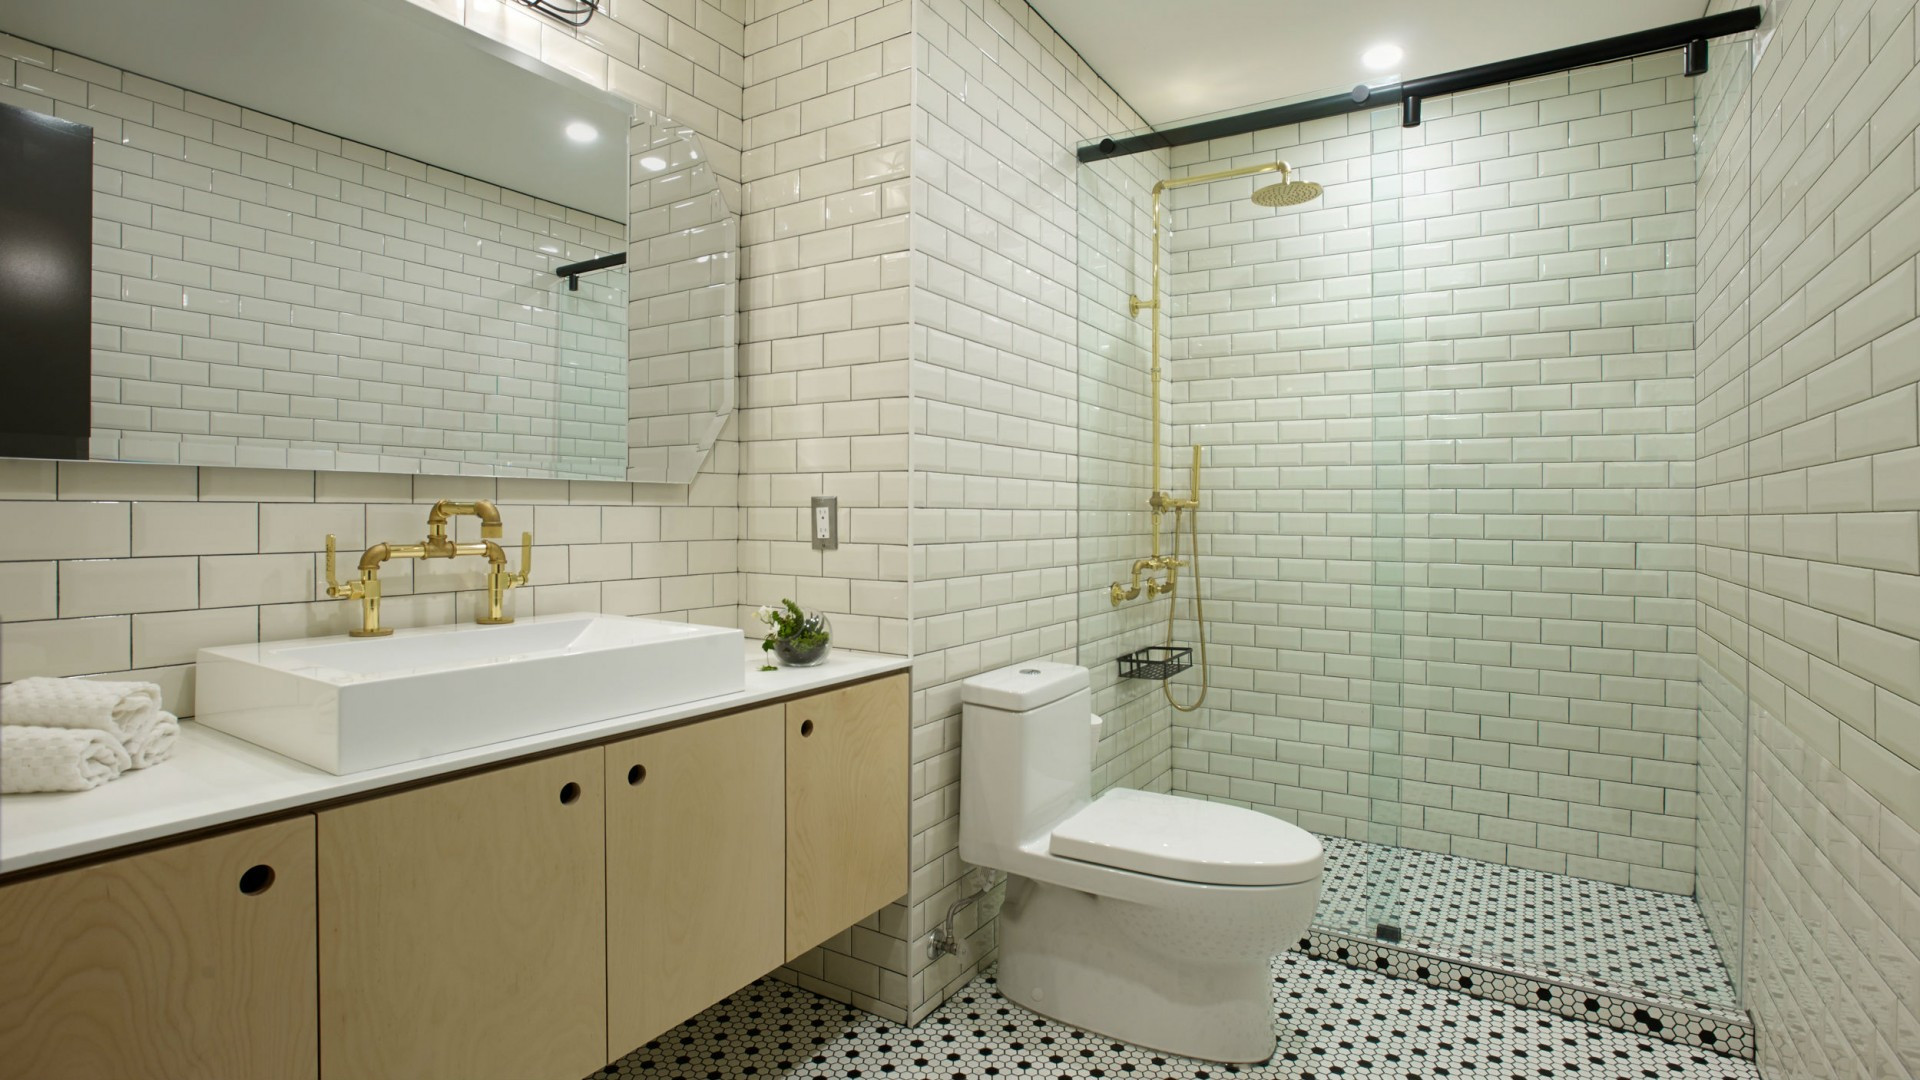 Best hotels Toronto staycation | The Anndore House ensuite bathroom